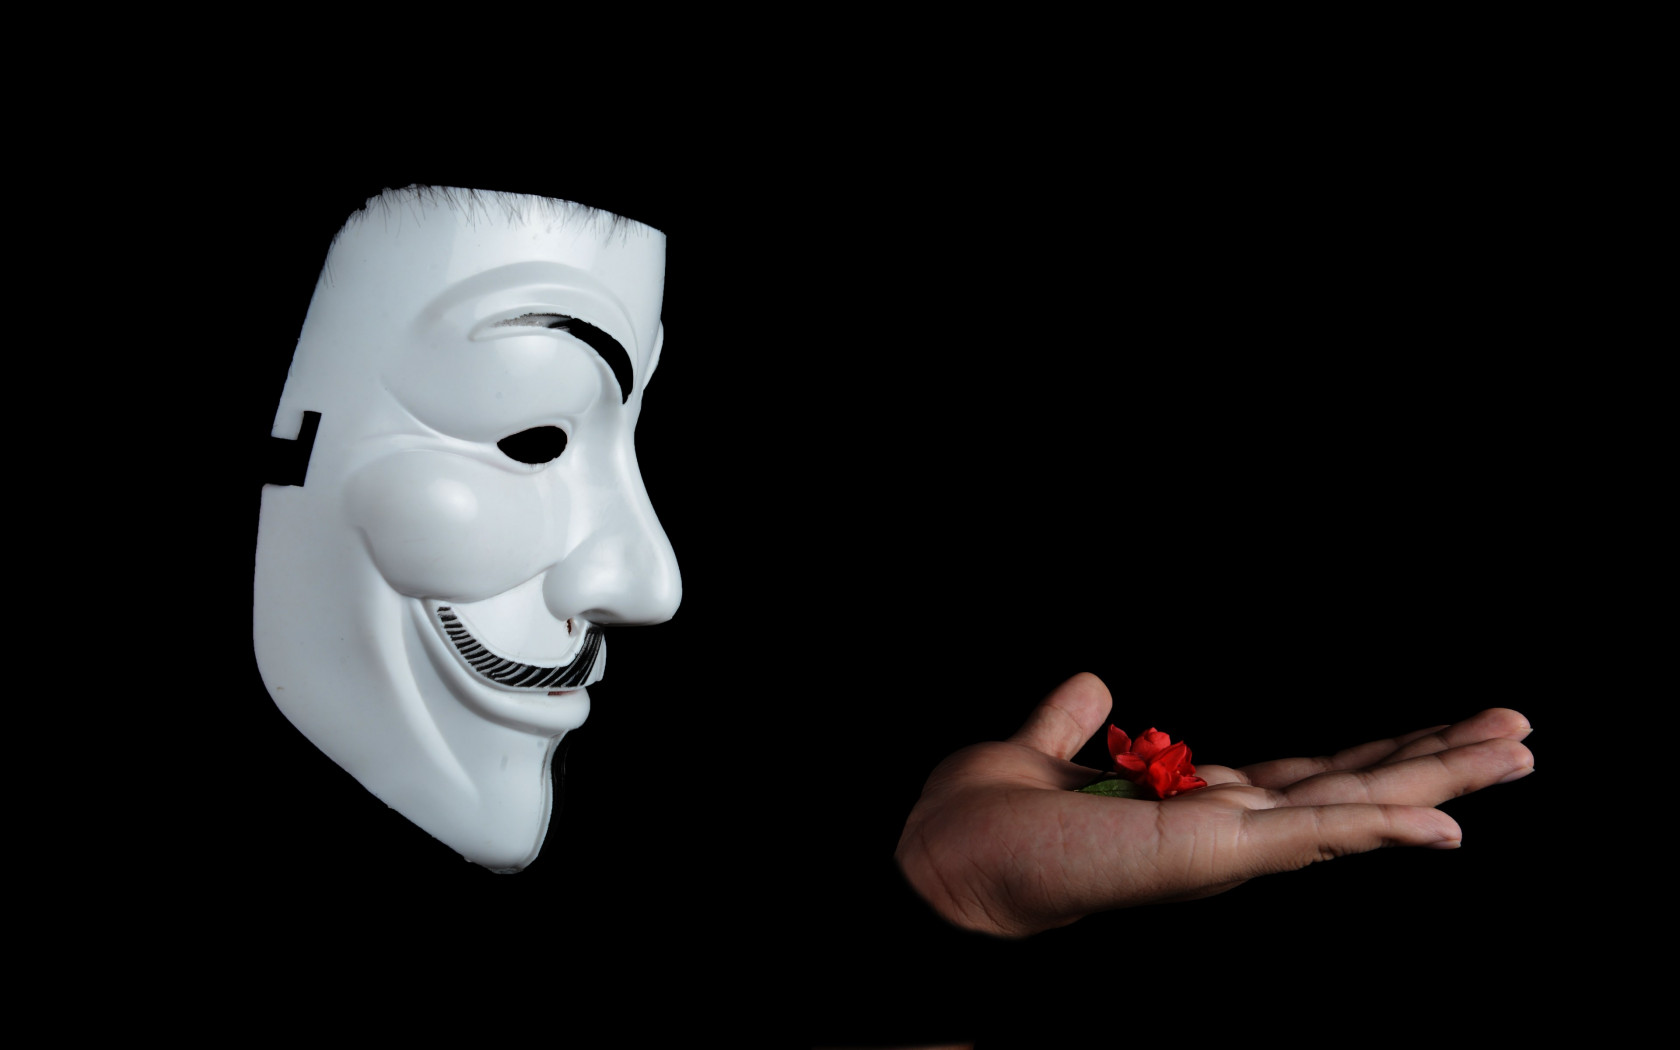 Anonymous mask | 1680x1050 wallpaper